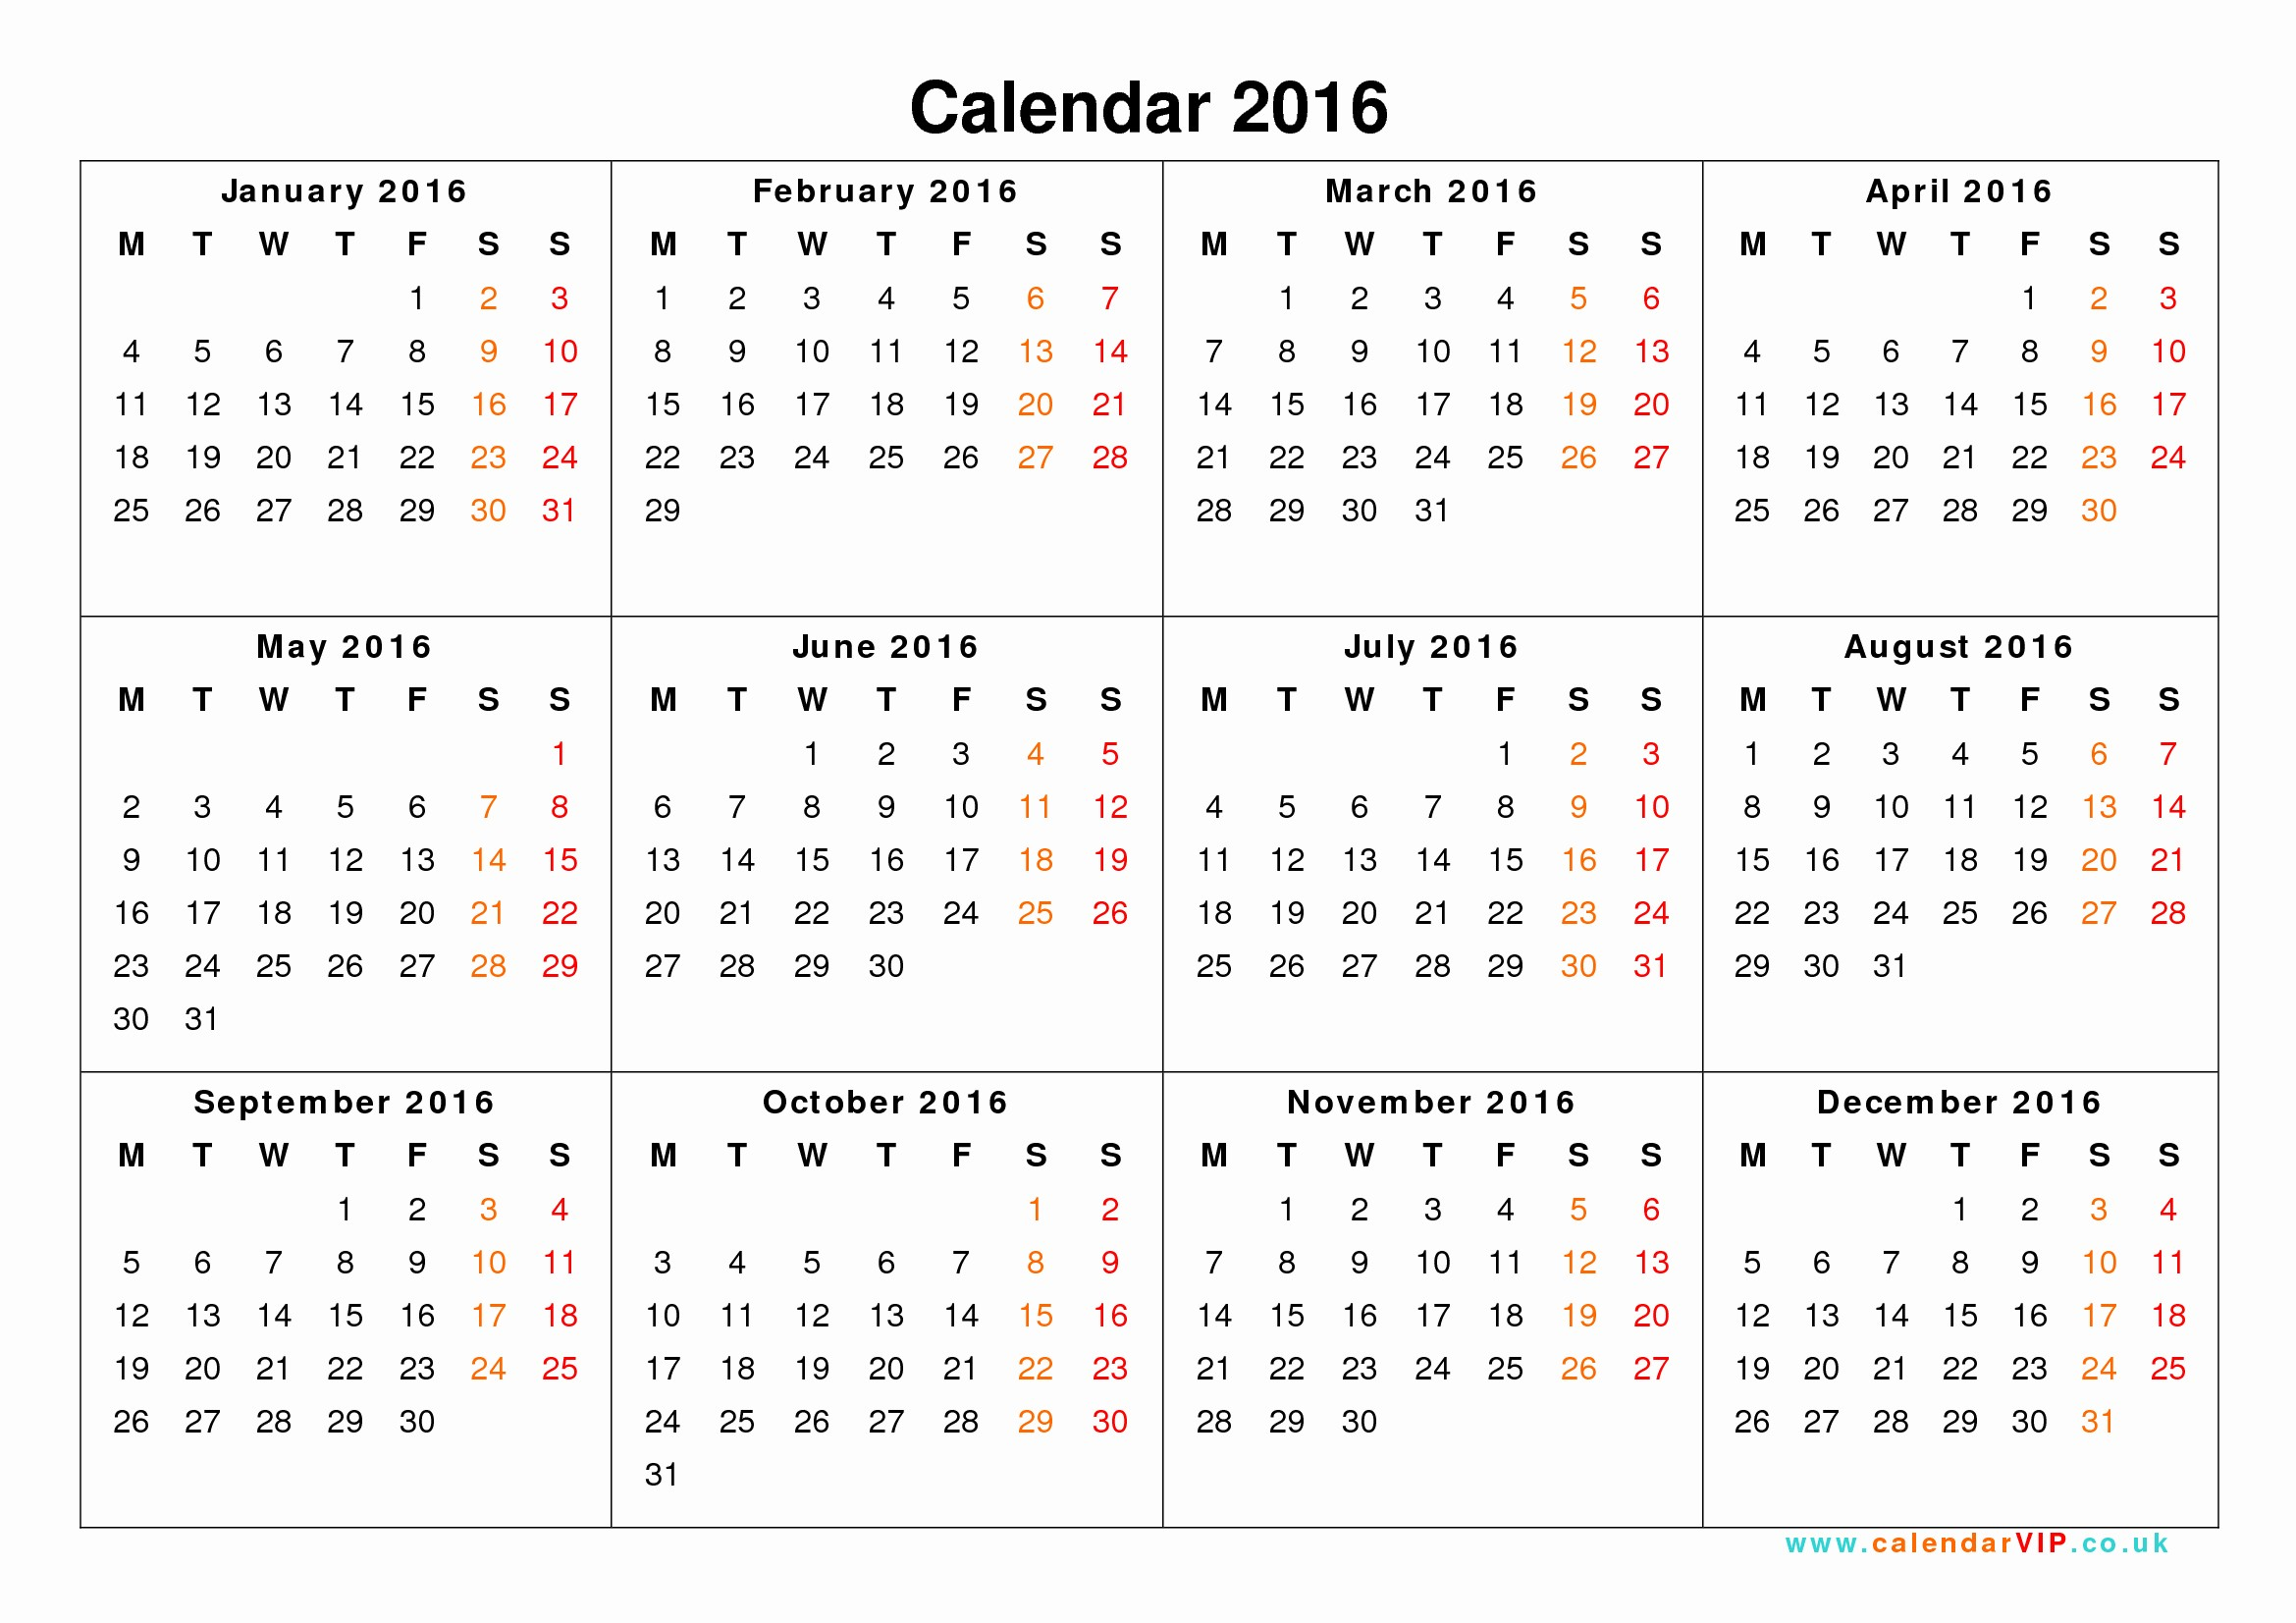 12 Months Calendar 2016 Printable Fresh Calendar 2016 Uk Free Yearly Calendar Templates for Uk